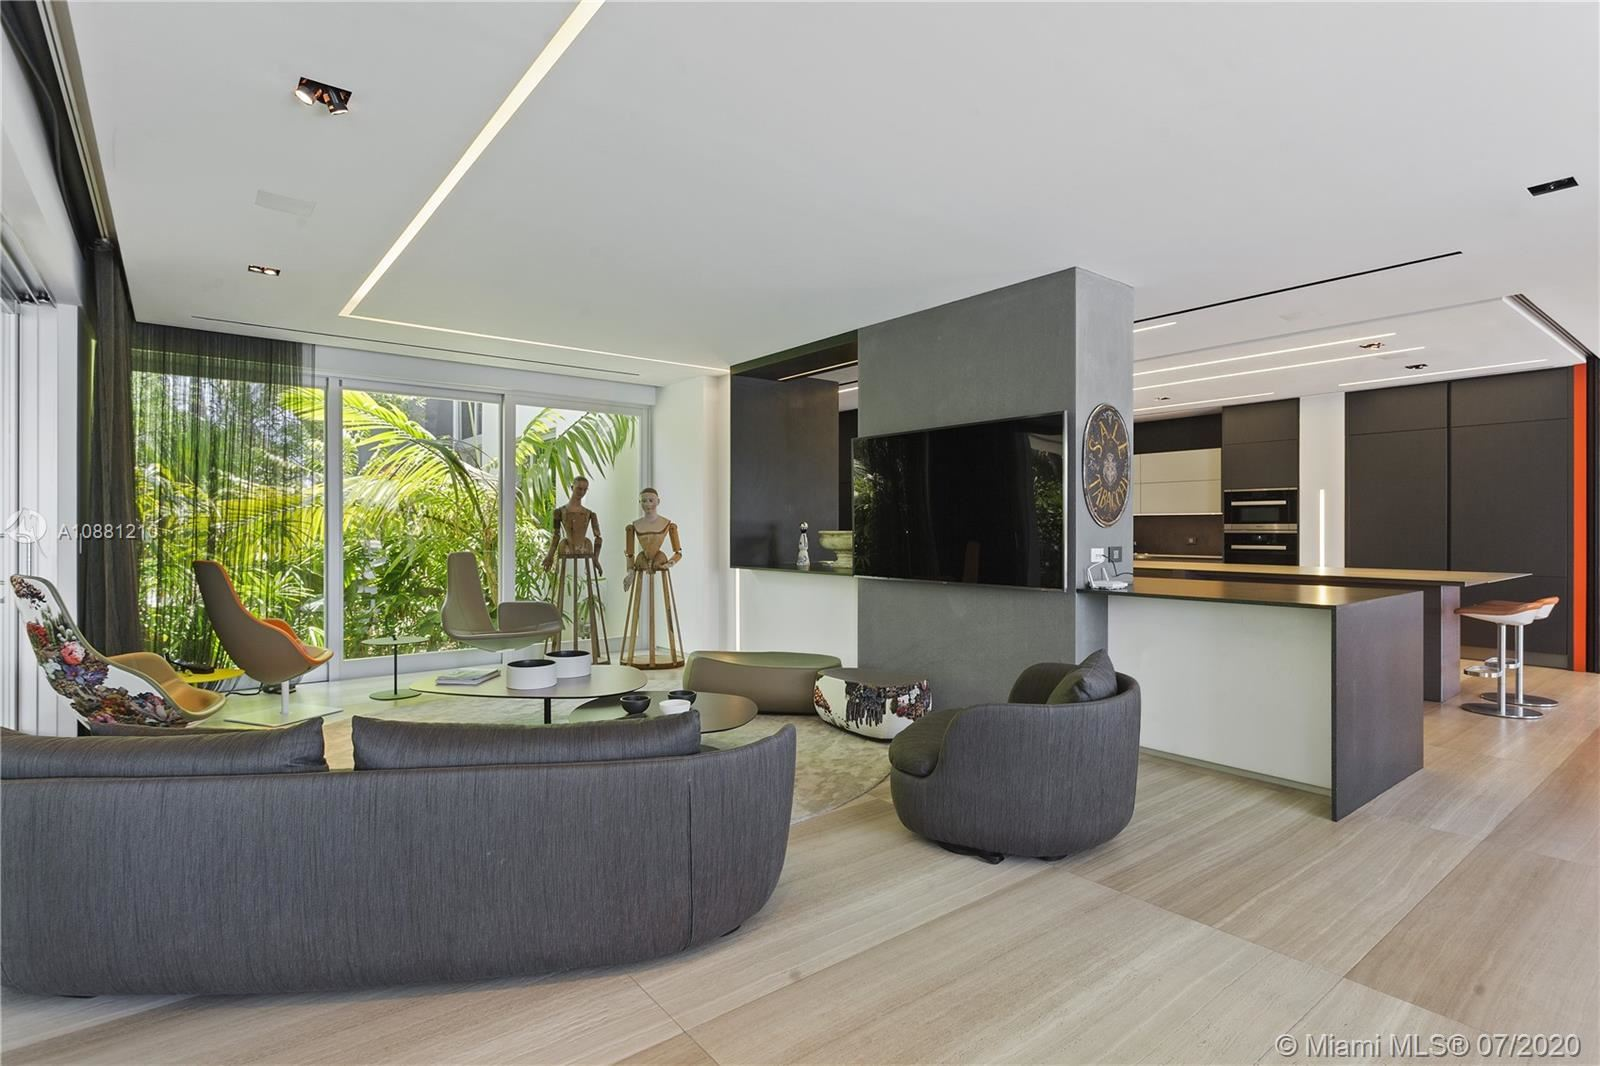 Photo 10 of Listing MLS a10881210 in 370 S Hibiscus Dr Miami Beach FL 33139